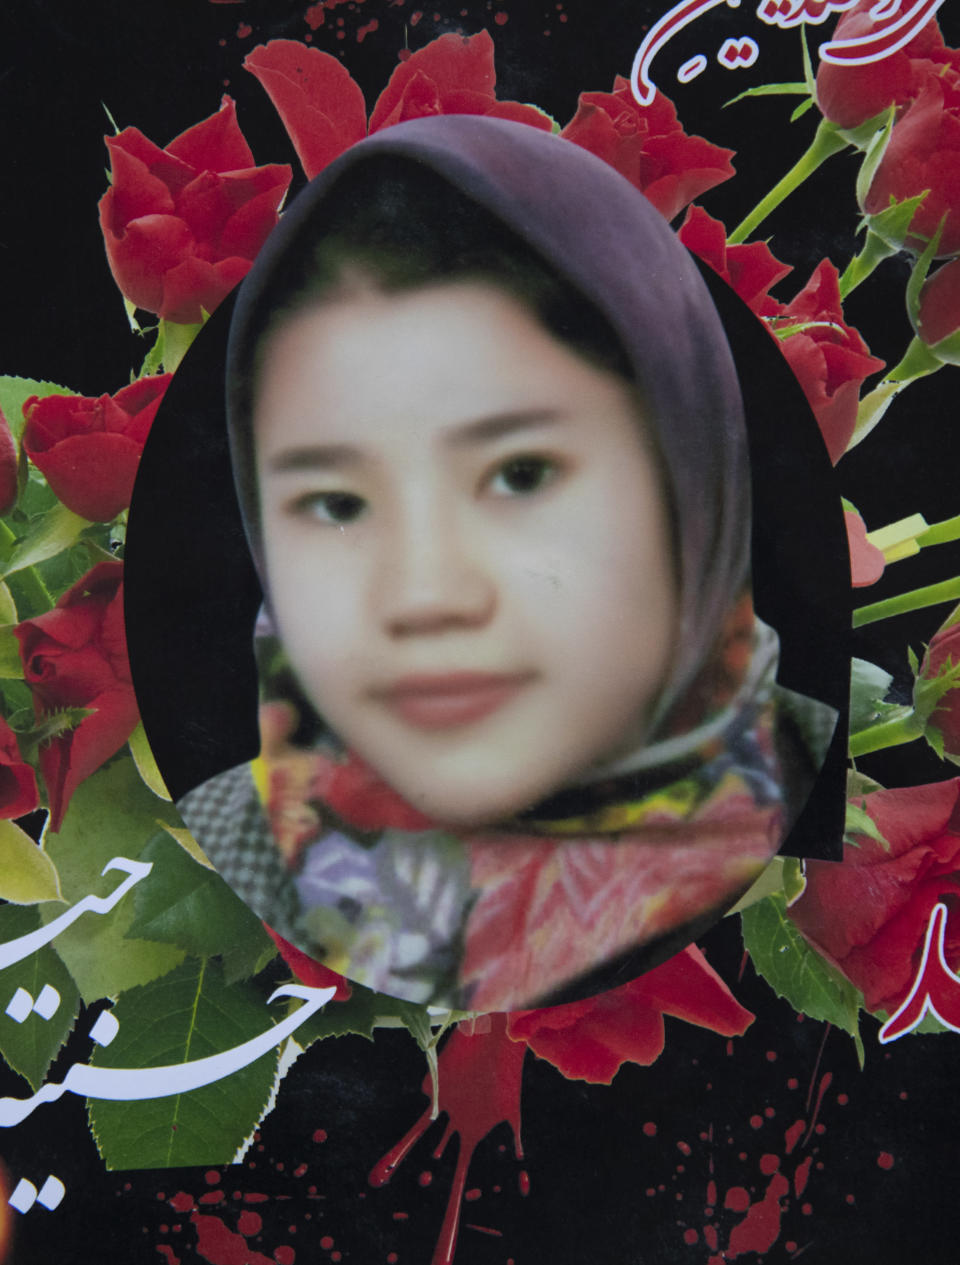 This undated photo released by the family shows Hassina Haidari,who was among nearly 100 people killed in bombing attacks outside her school on May 8, 2021. Hassina Haideri 13,, was forever in the kitchen helping her mother, says her father Alidad. She loved to cook but her dream was to become a doctor. She sold clothes she made in a nearby shop to earn extra money for her family. (AP Photo)